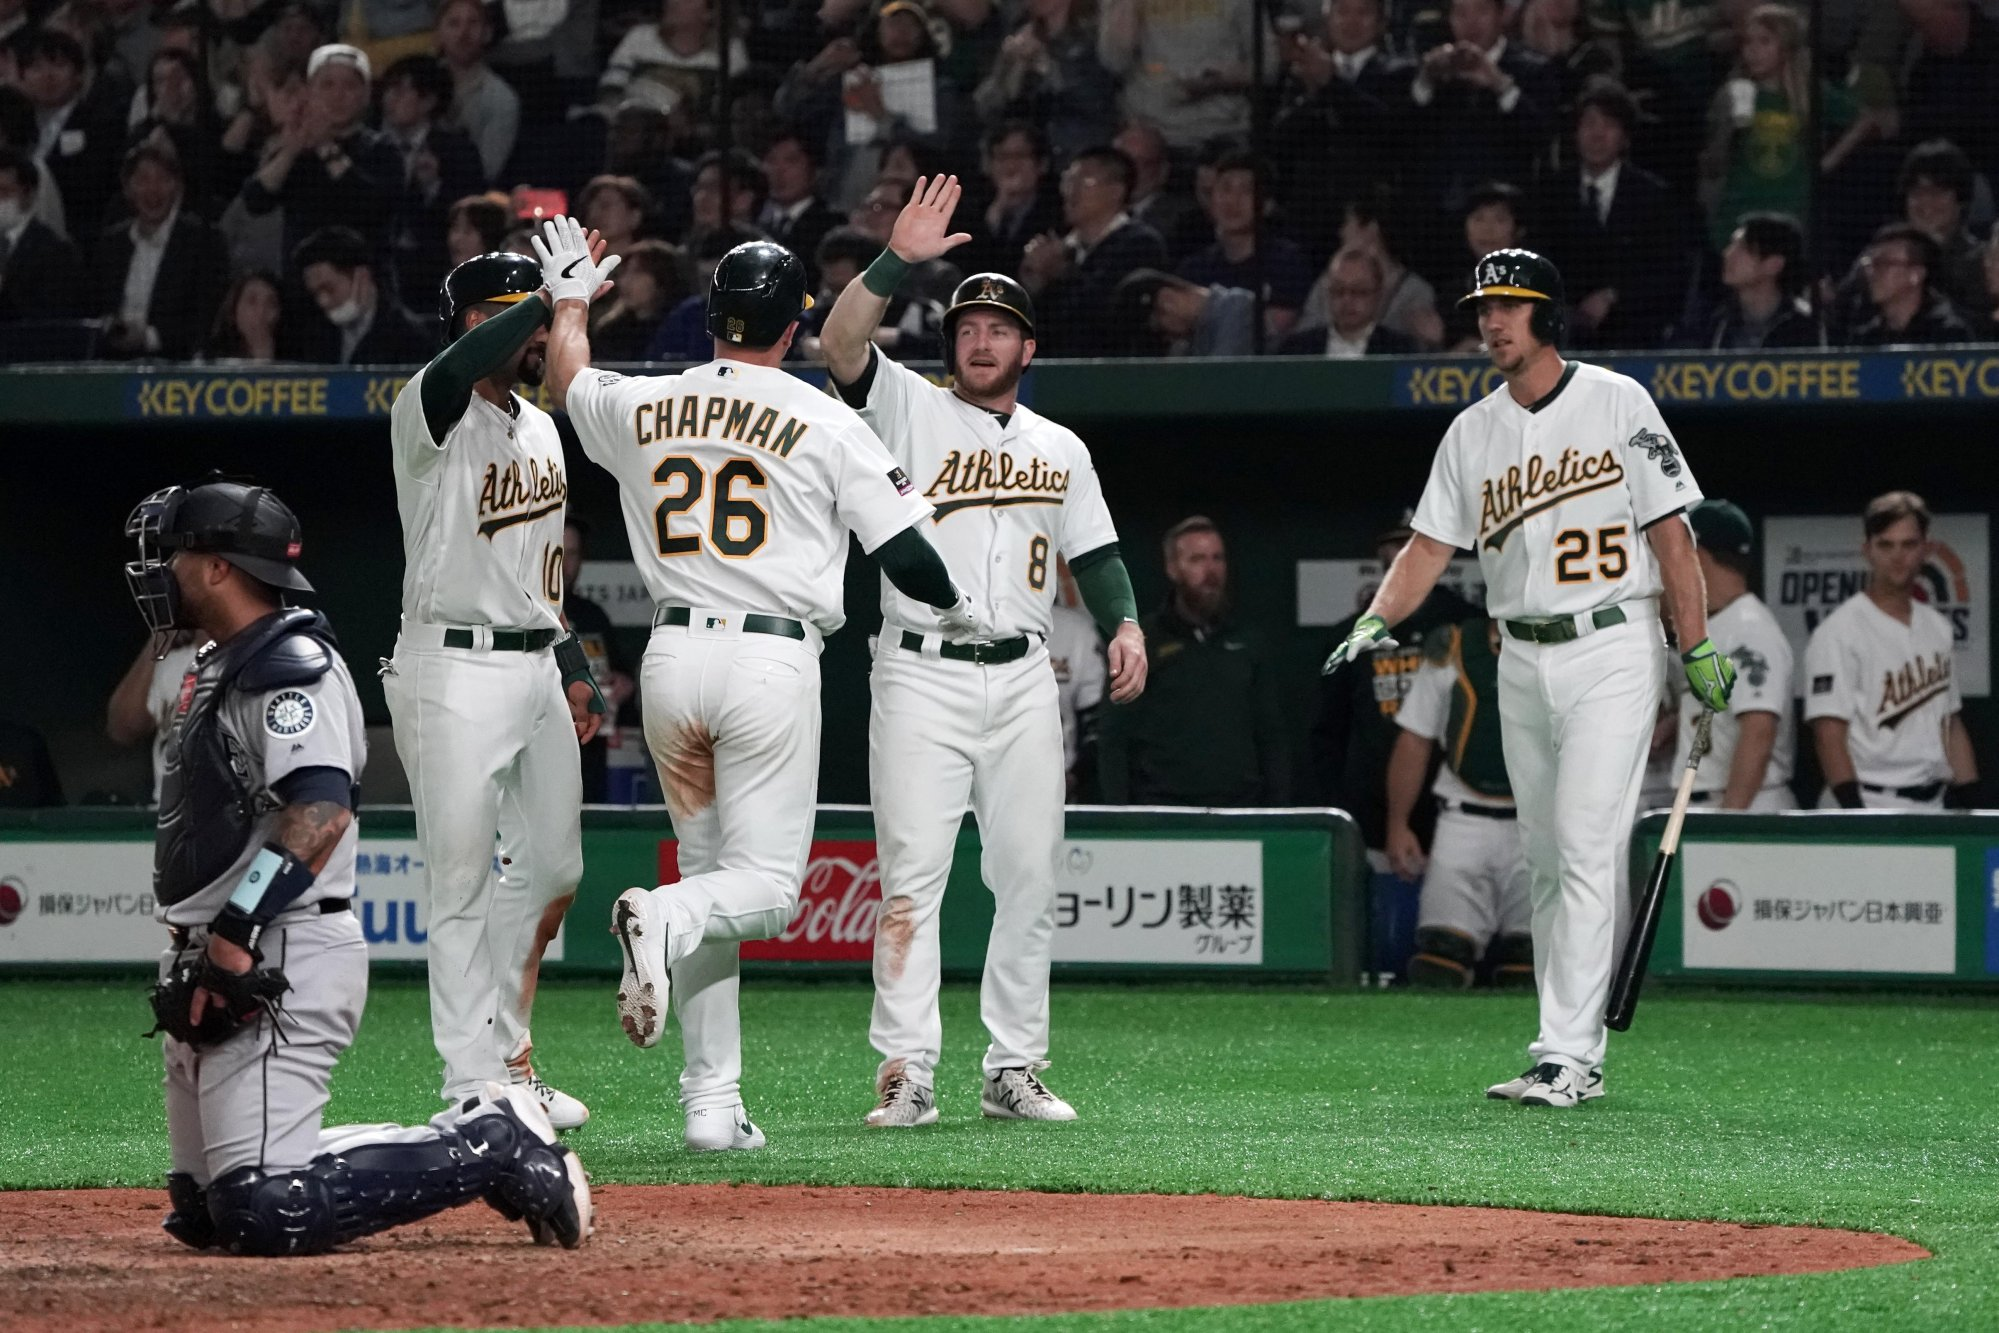 TOKYO, JAPAN - MARCH 20: Infielder Matt Chapman #26 of the Oakland Athletics is congratulated by his team mates after hitting a three-run home run to make it 9-7 in the 7th inning during the game between Seattle Mariners and Oakland Athletics at Tokyo Dome on March 20, 2019 in Tokyo, Japan. (Photo by Masterpress/Getty Images)